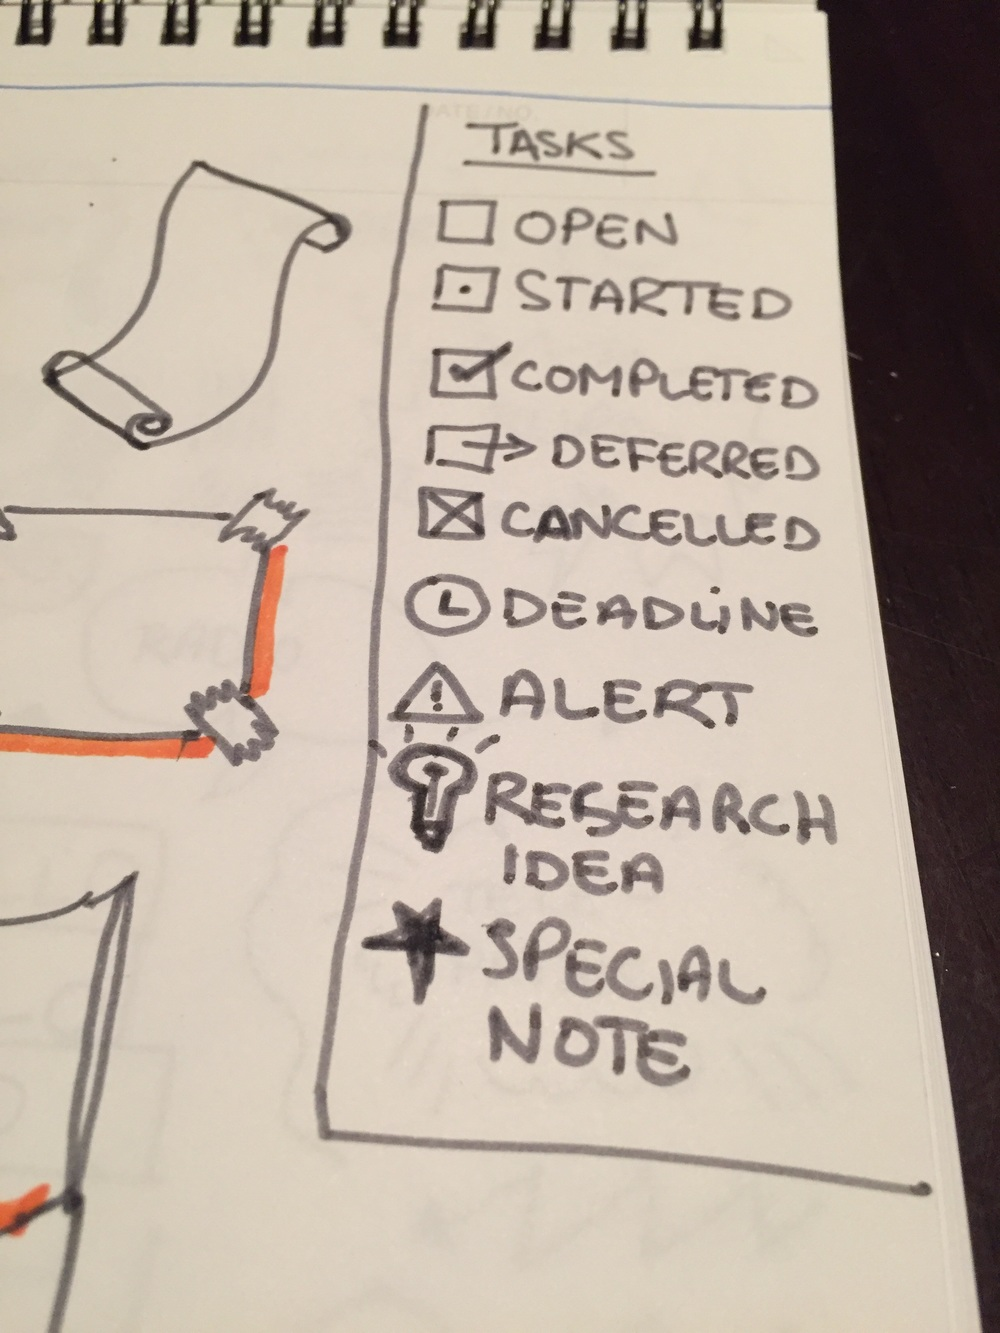 Note-taking annotations